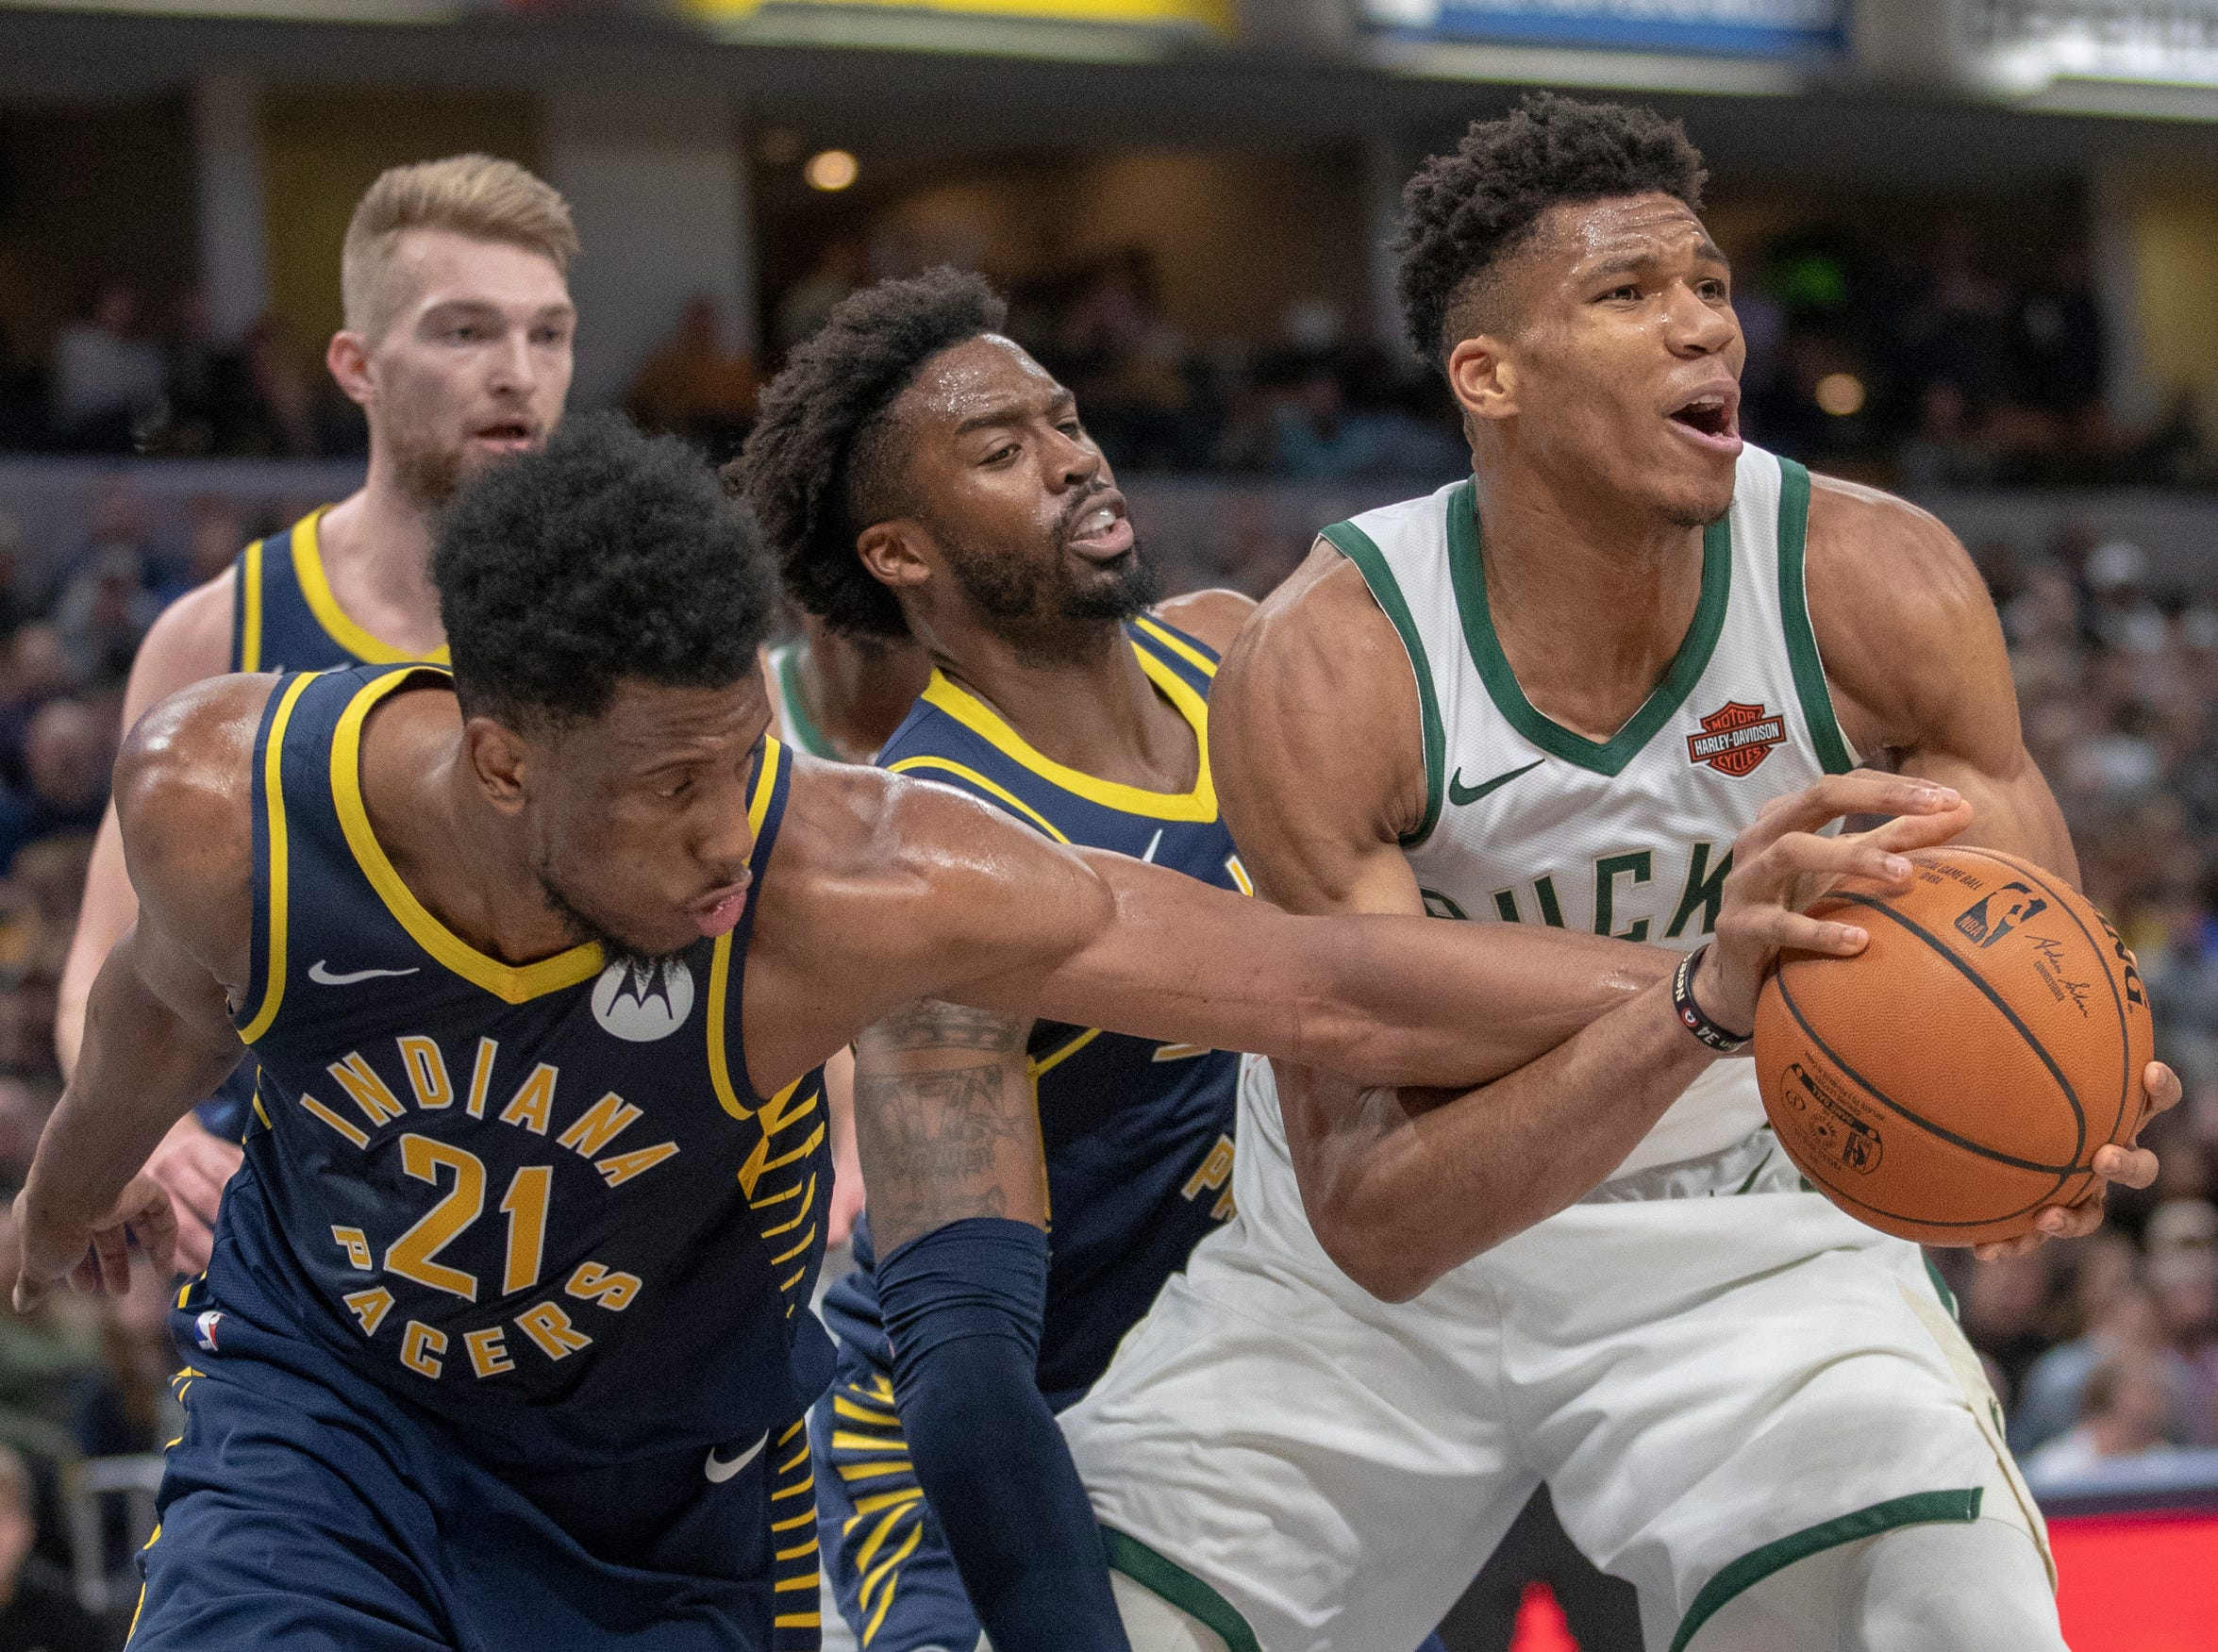 Thaddeus Young of the Indiana Pacers defends Giannis Antetokounmpo of the Milwaukee Bucks during first half action, Bankers Life Fieldhouse, Wednesday, Feb. 13, 2019.